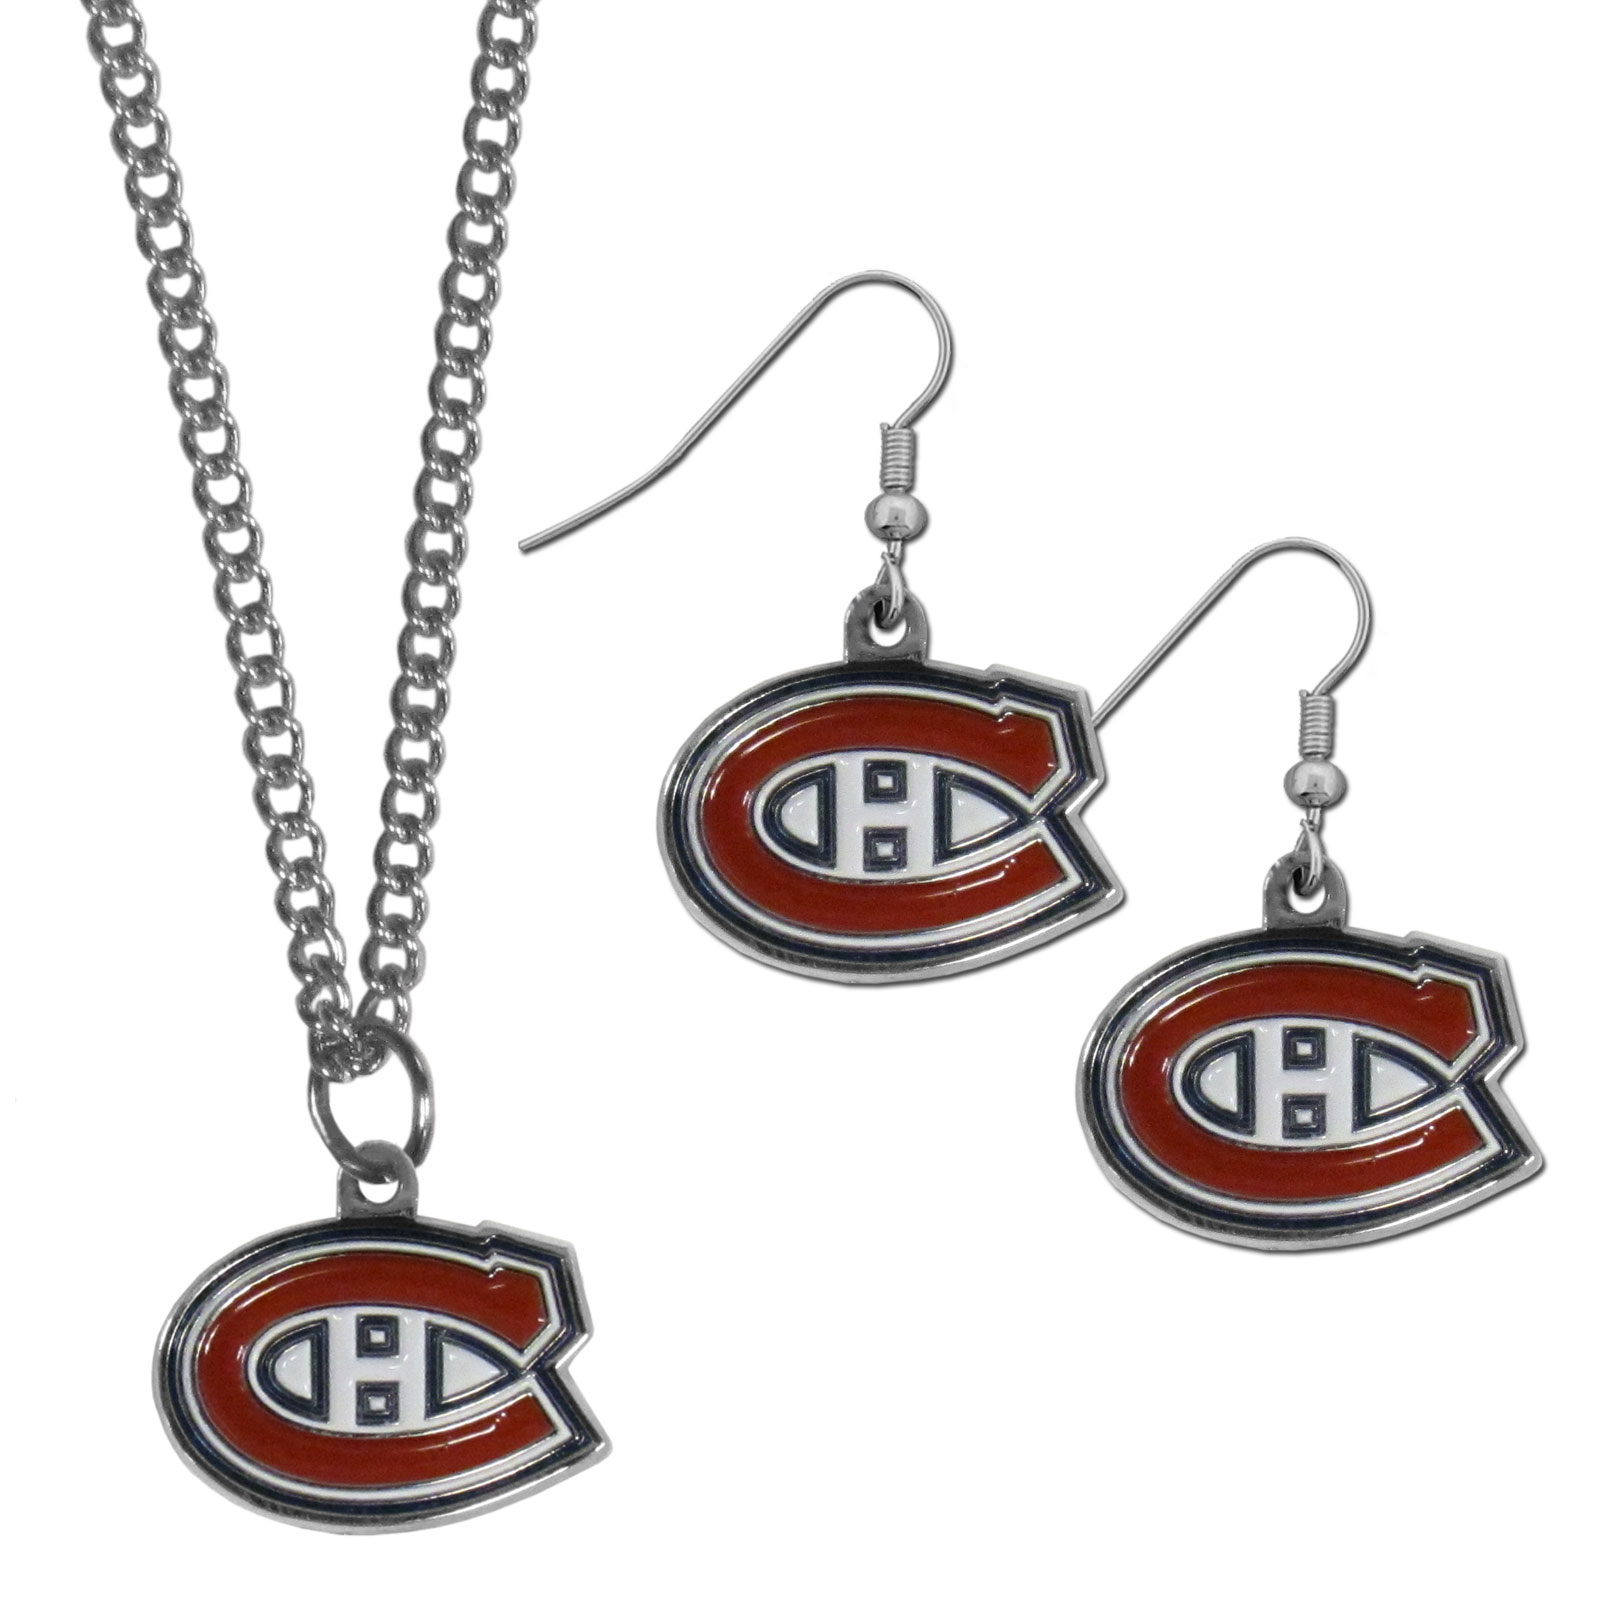 Montreal Canadiens® Dangle Earrings and Chain Necklace Set - This classic jewelry set contains are most popular Montreal Canadiens® dangle earrings and 22 inch chain necklace. The trendy, dangle earrings are lightweight and feature a fully cast metal team charm with enameled team colors. The matching necklace completes this fashion forward combo and is a spirited set that is perfect for game day but nice enough for everyday.